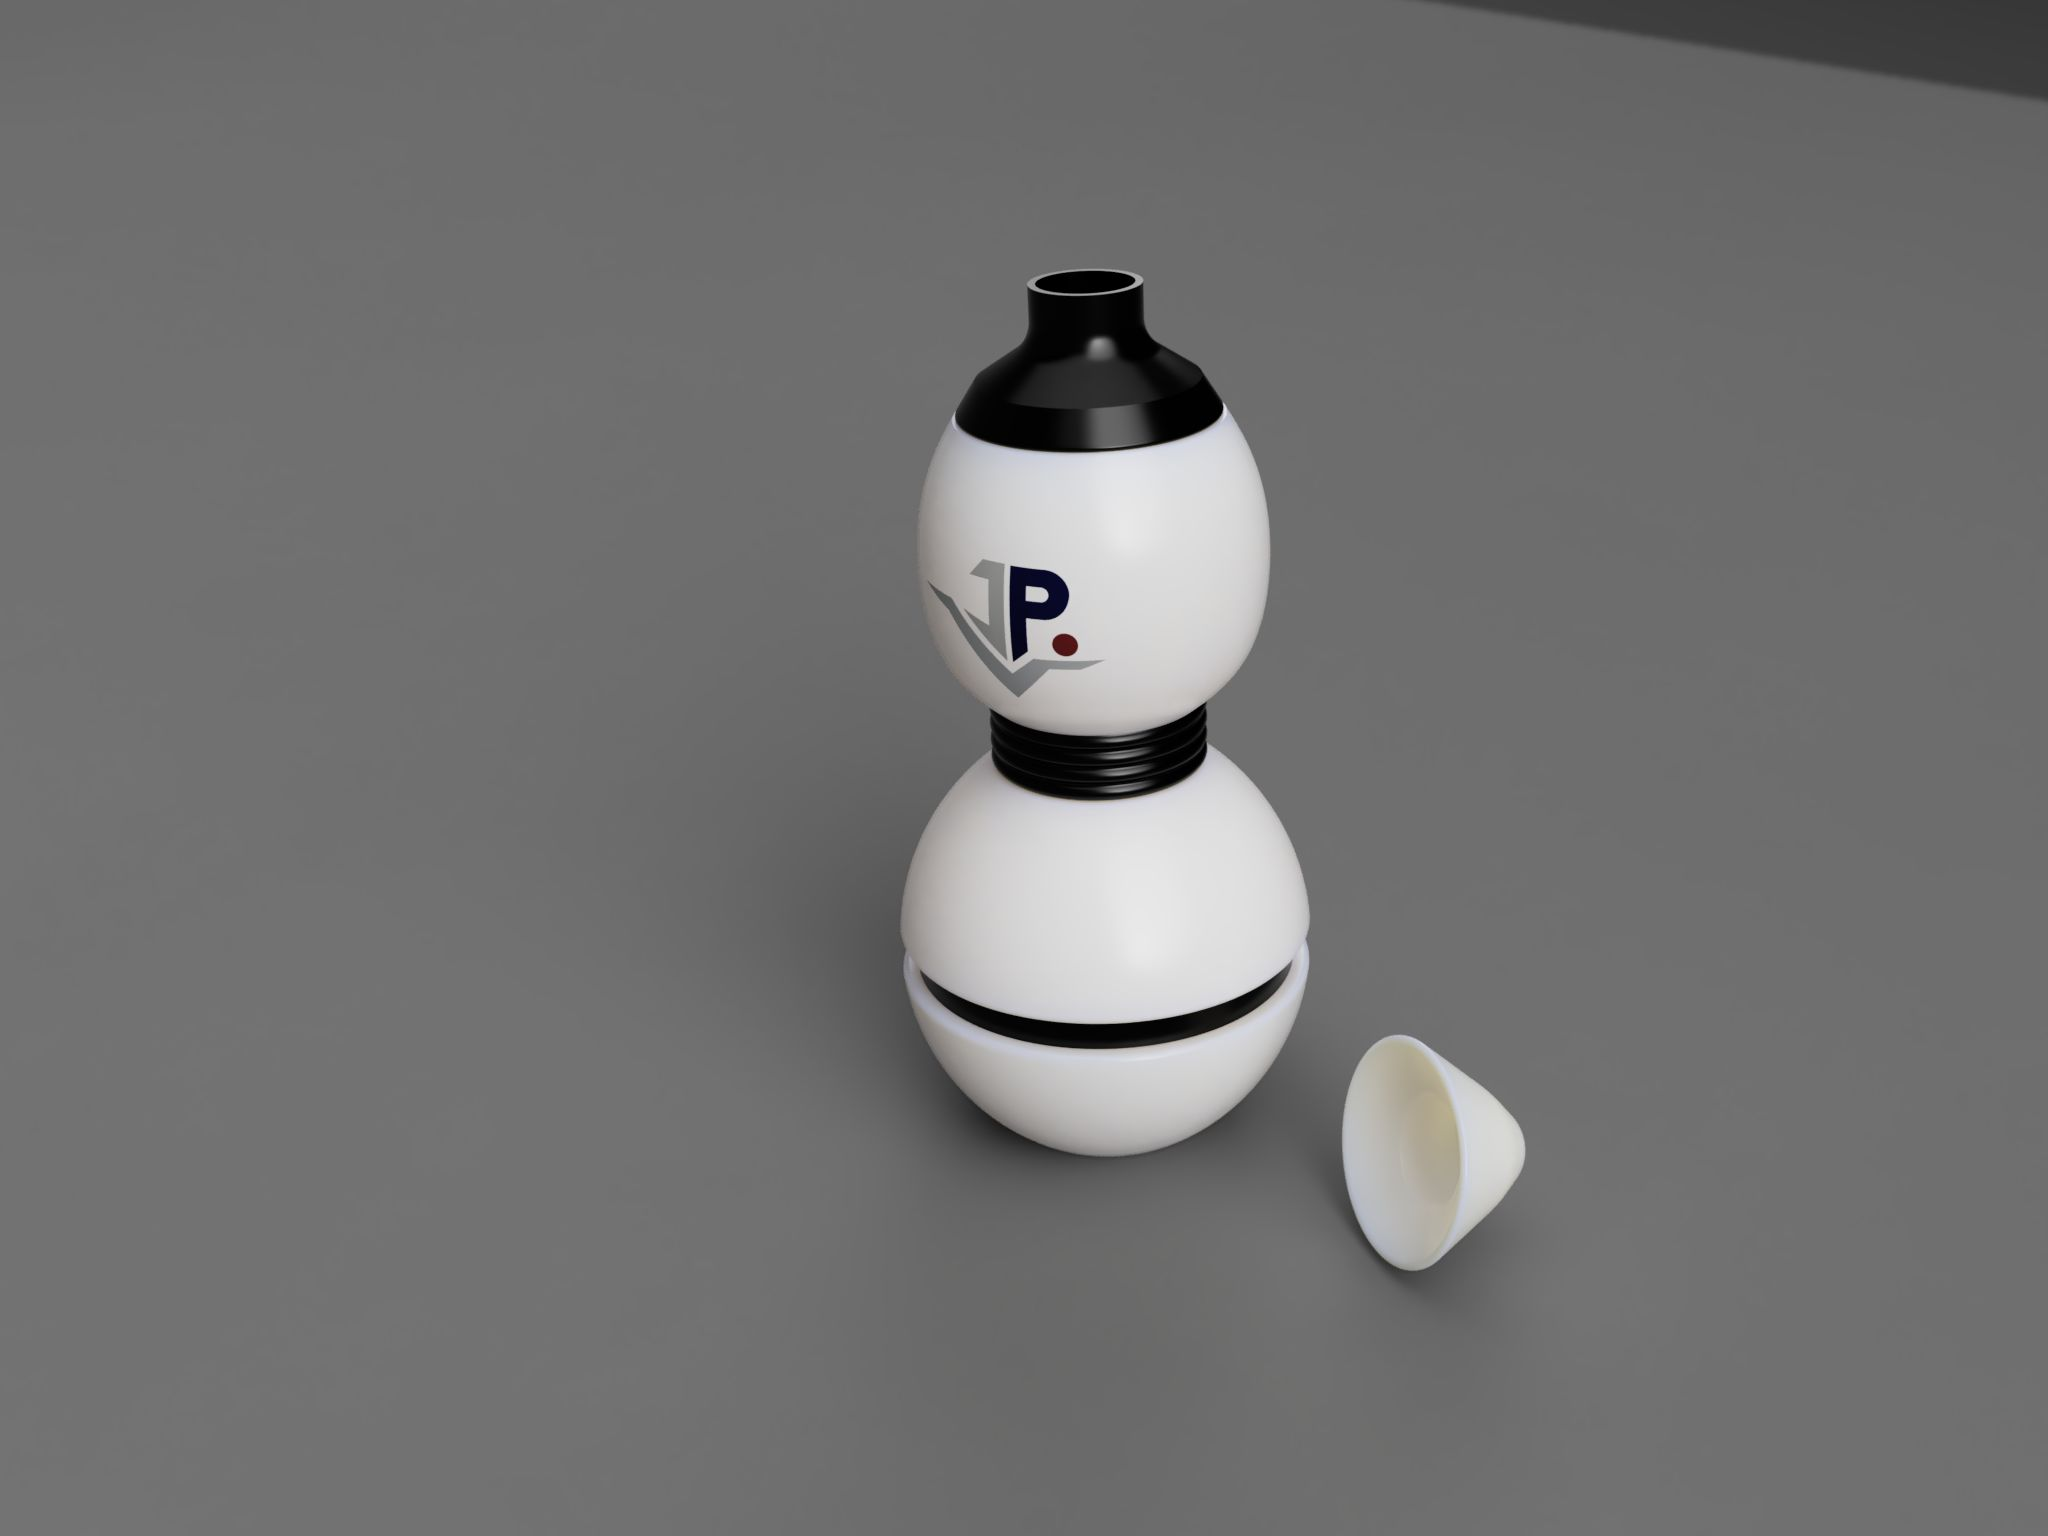 Botella-2019-oct-31-02-31-50am-000-customizedview18249438315-png-3500-3500